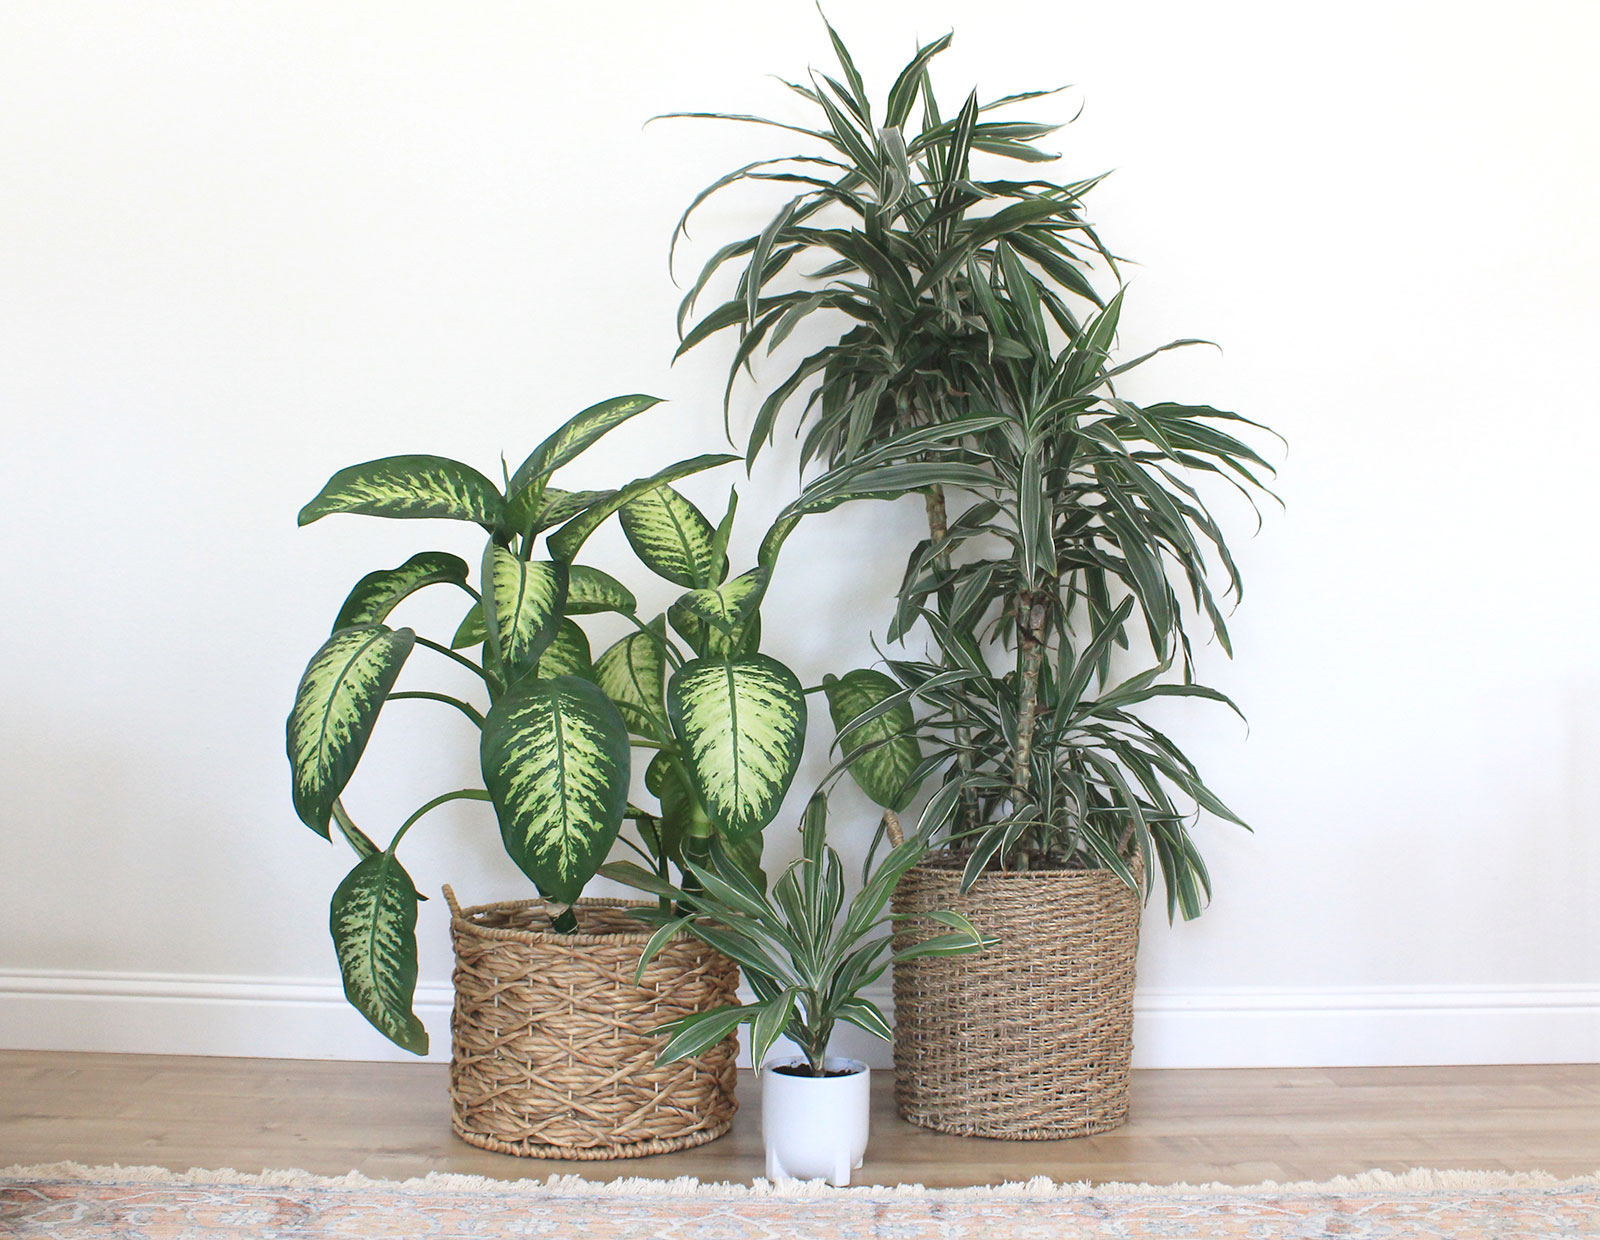 How to clean houseplants